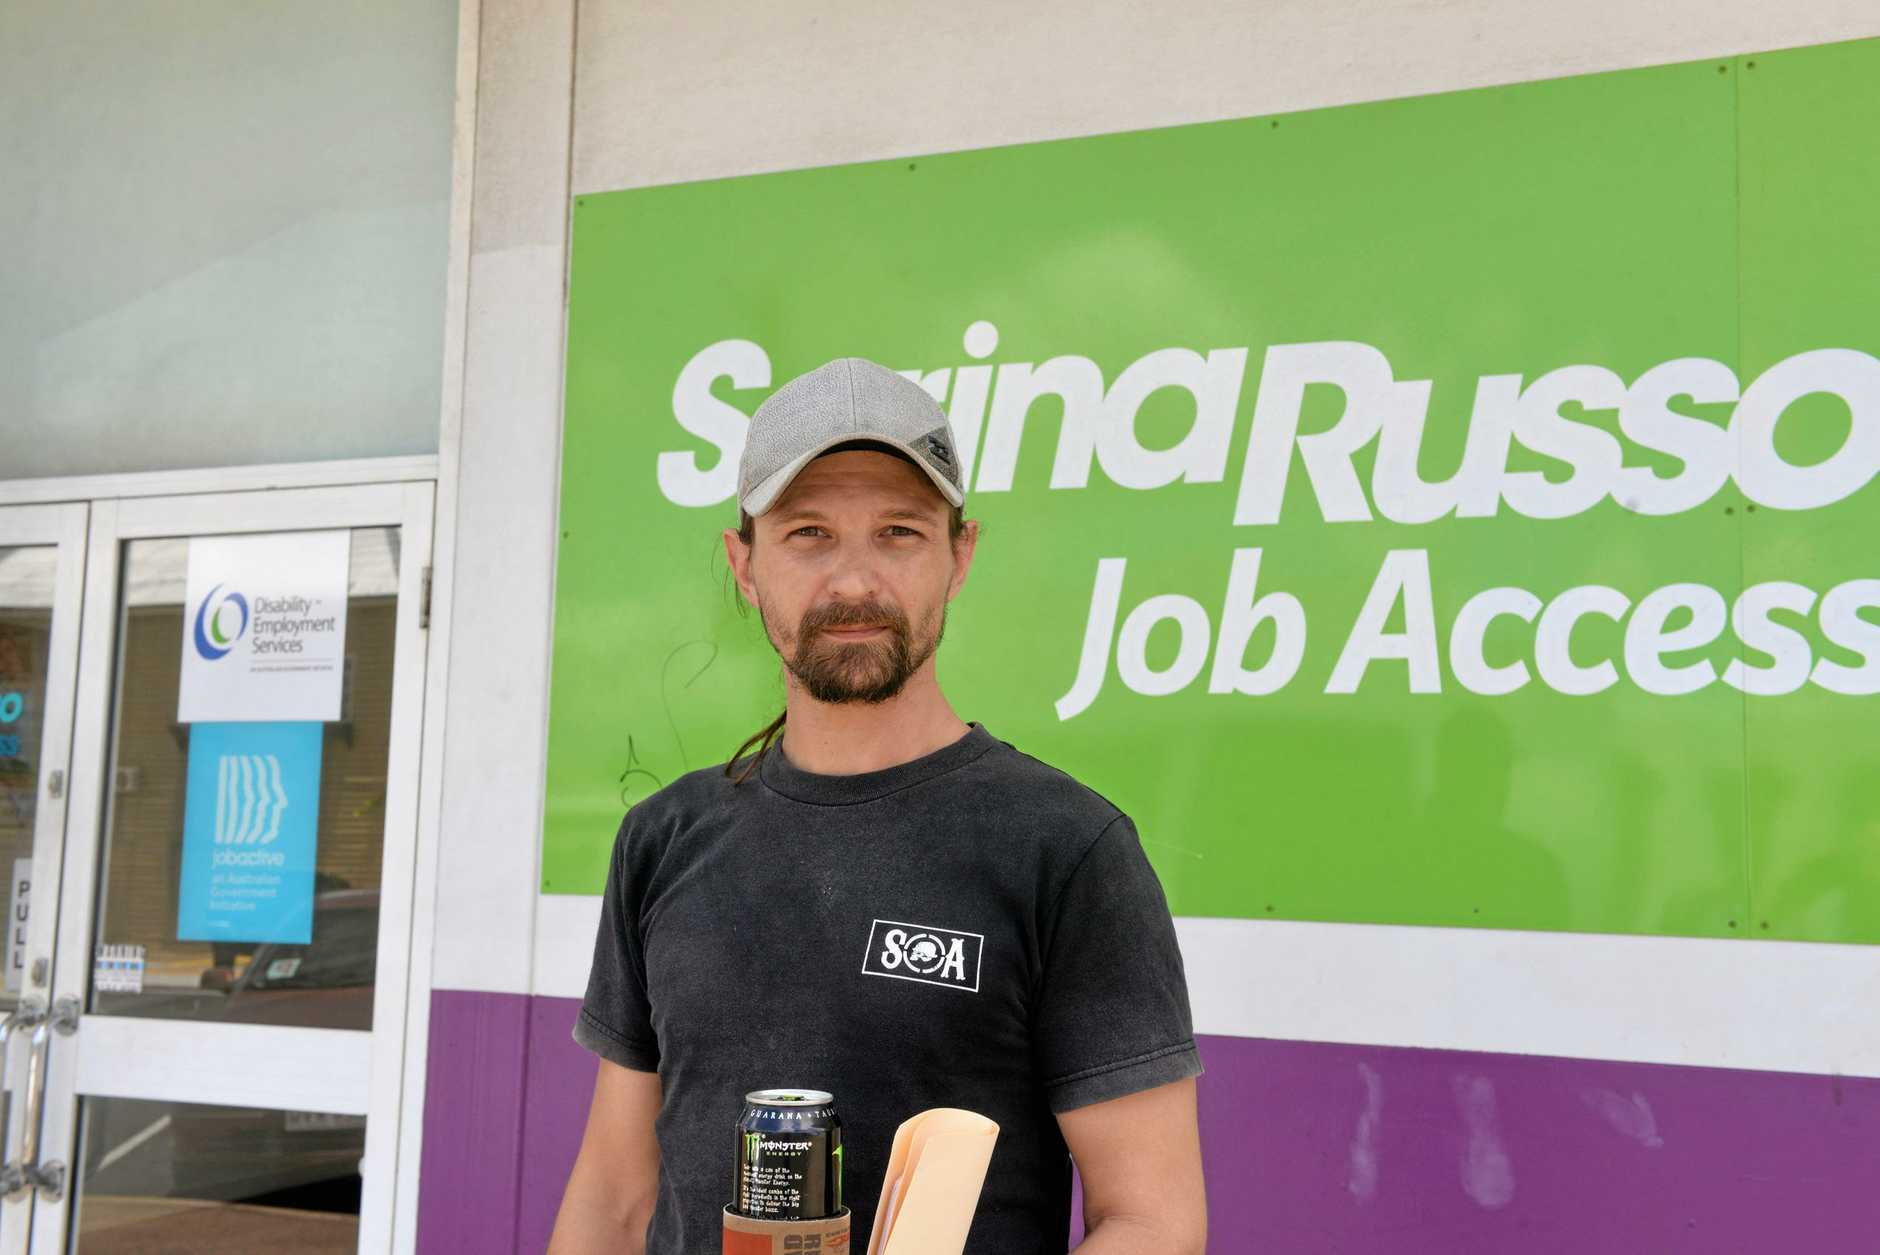 ON THE HUNT: Chris Stephens feels for young people trying to find a job in Bundaberg.